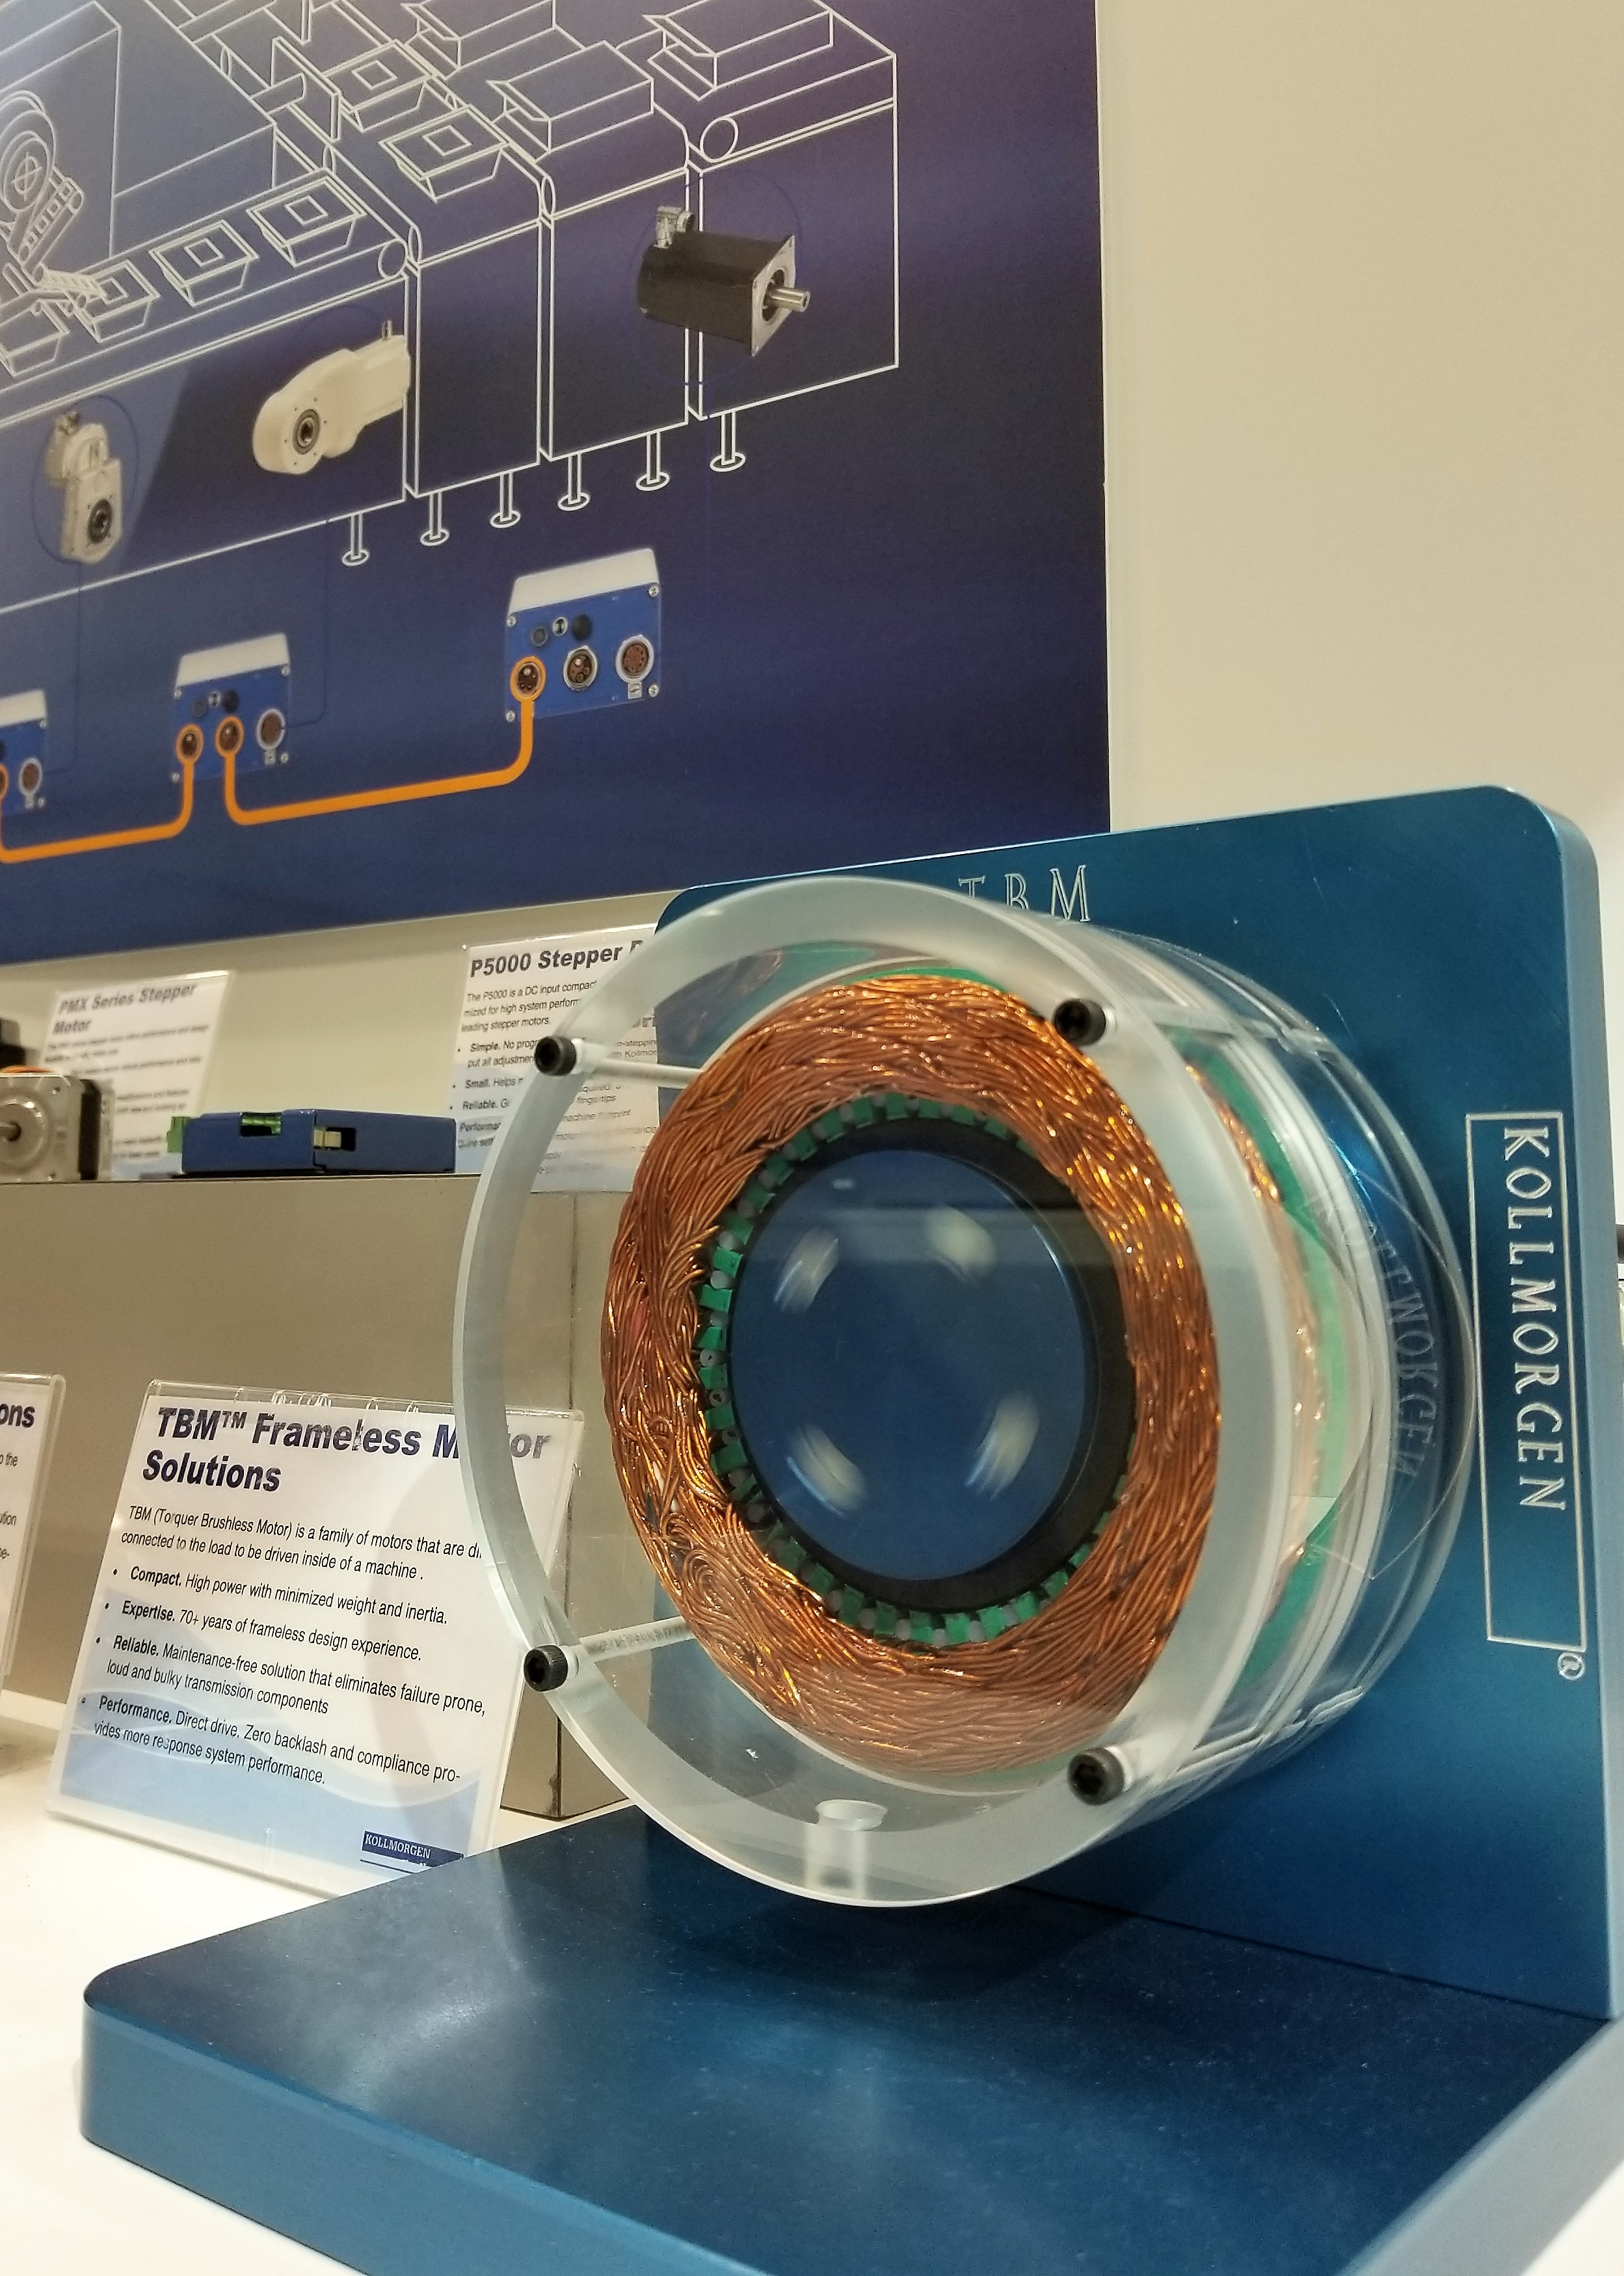 Why Choose A Frameless Motor For Your Machine Kollmorgen Servo Motion Control 101 Motors Performance Factors Are Not The Only Reason Can Be An Ideal Choice In Application Choosing Design Does Mean You